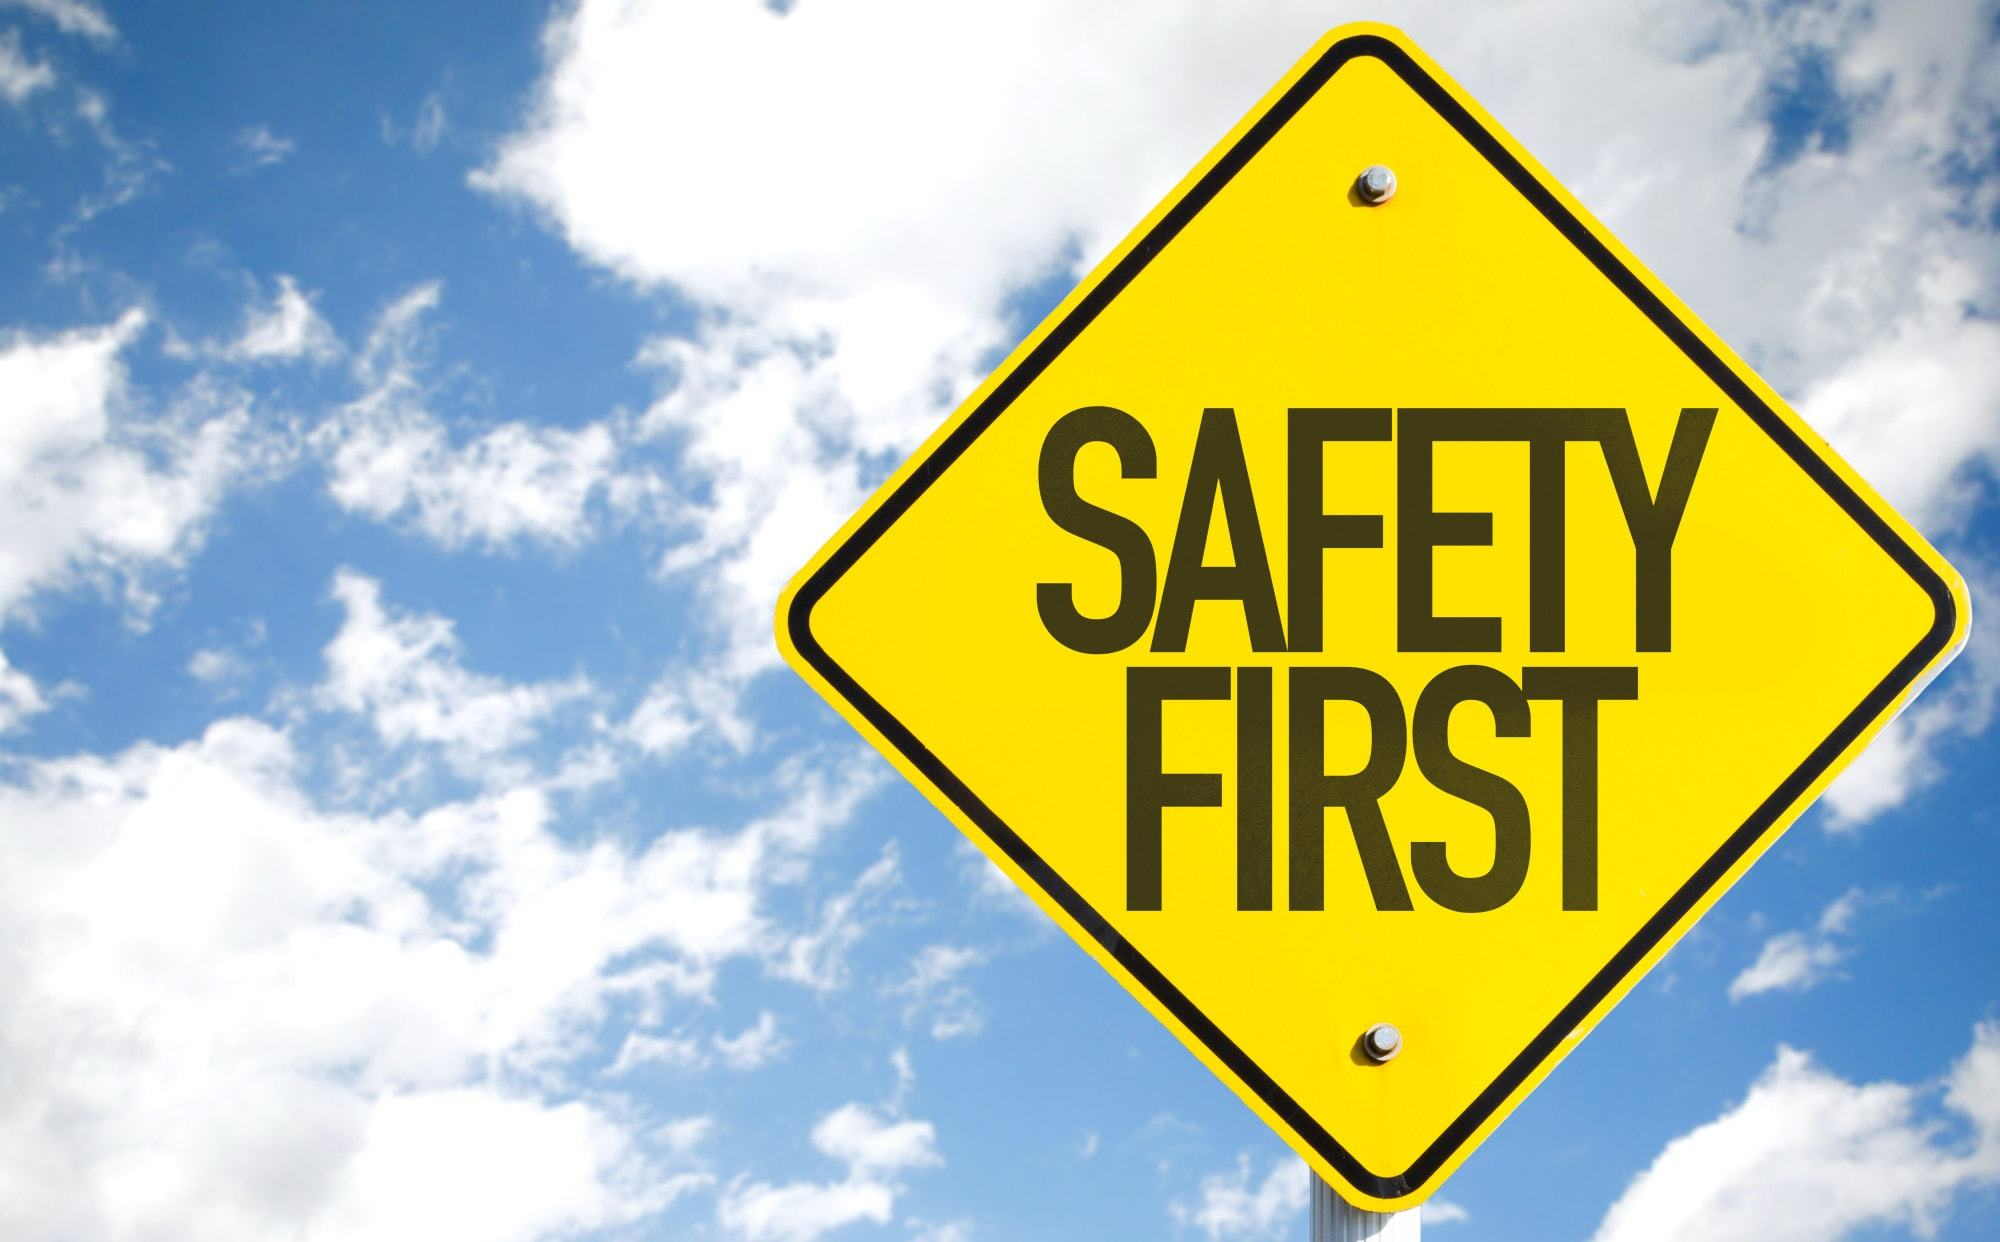 7 Health And Safety Policies: A Must Read For Employers